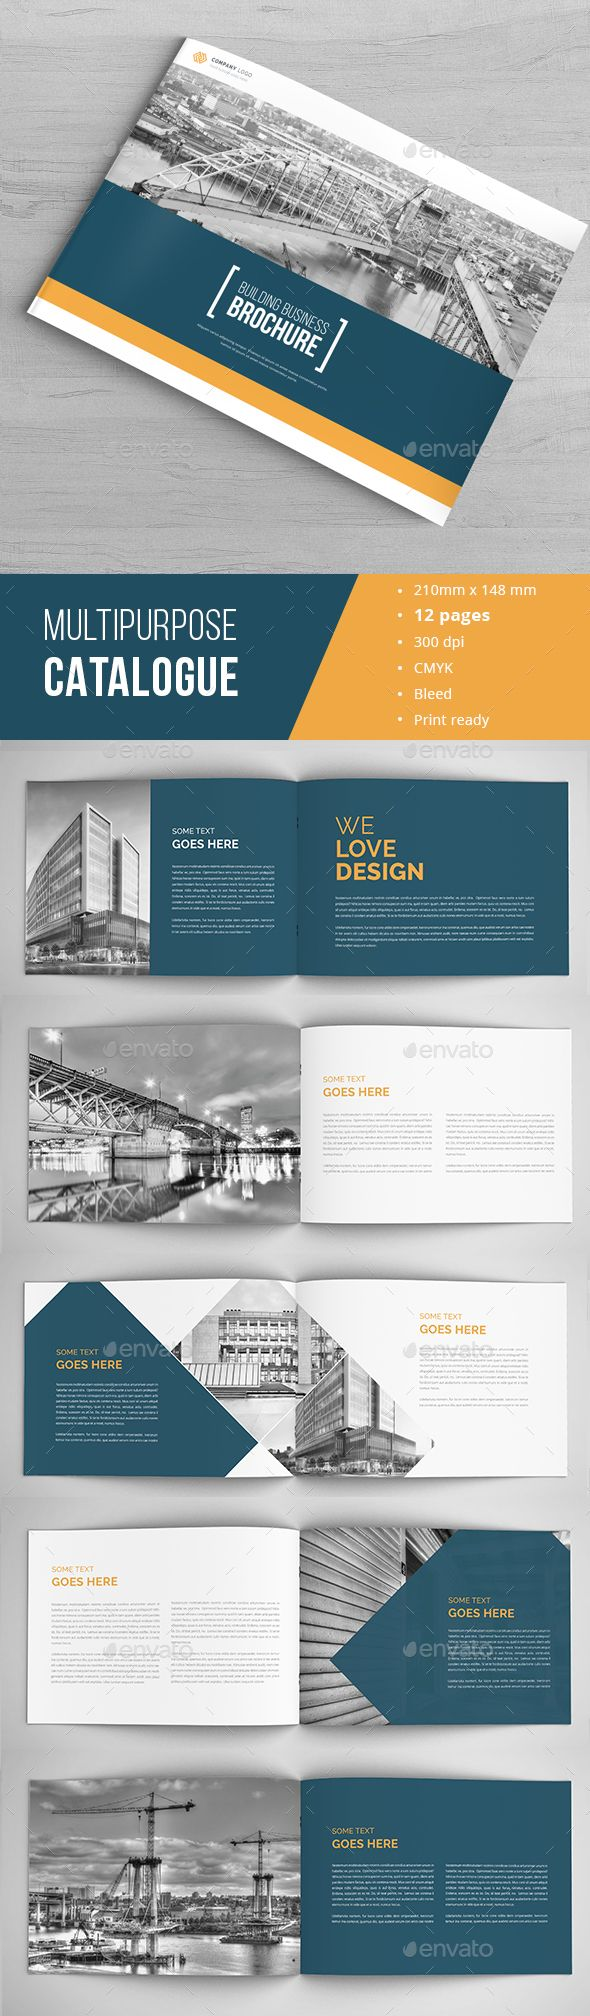 Architecture Design Brochure best 25+ business brochure ideas that you will like on pinterest